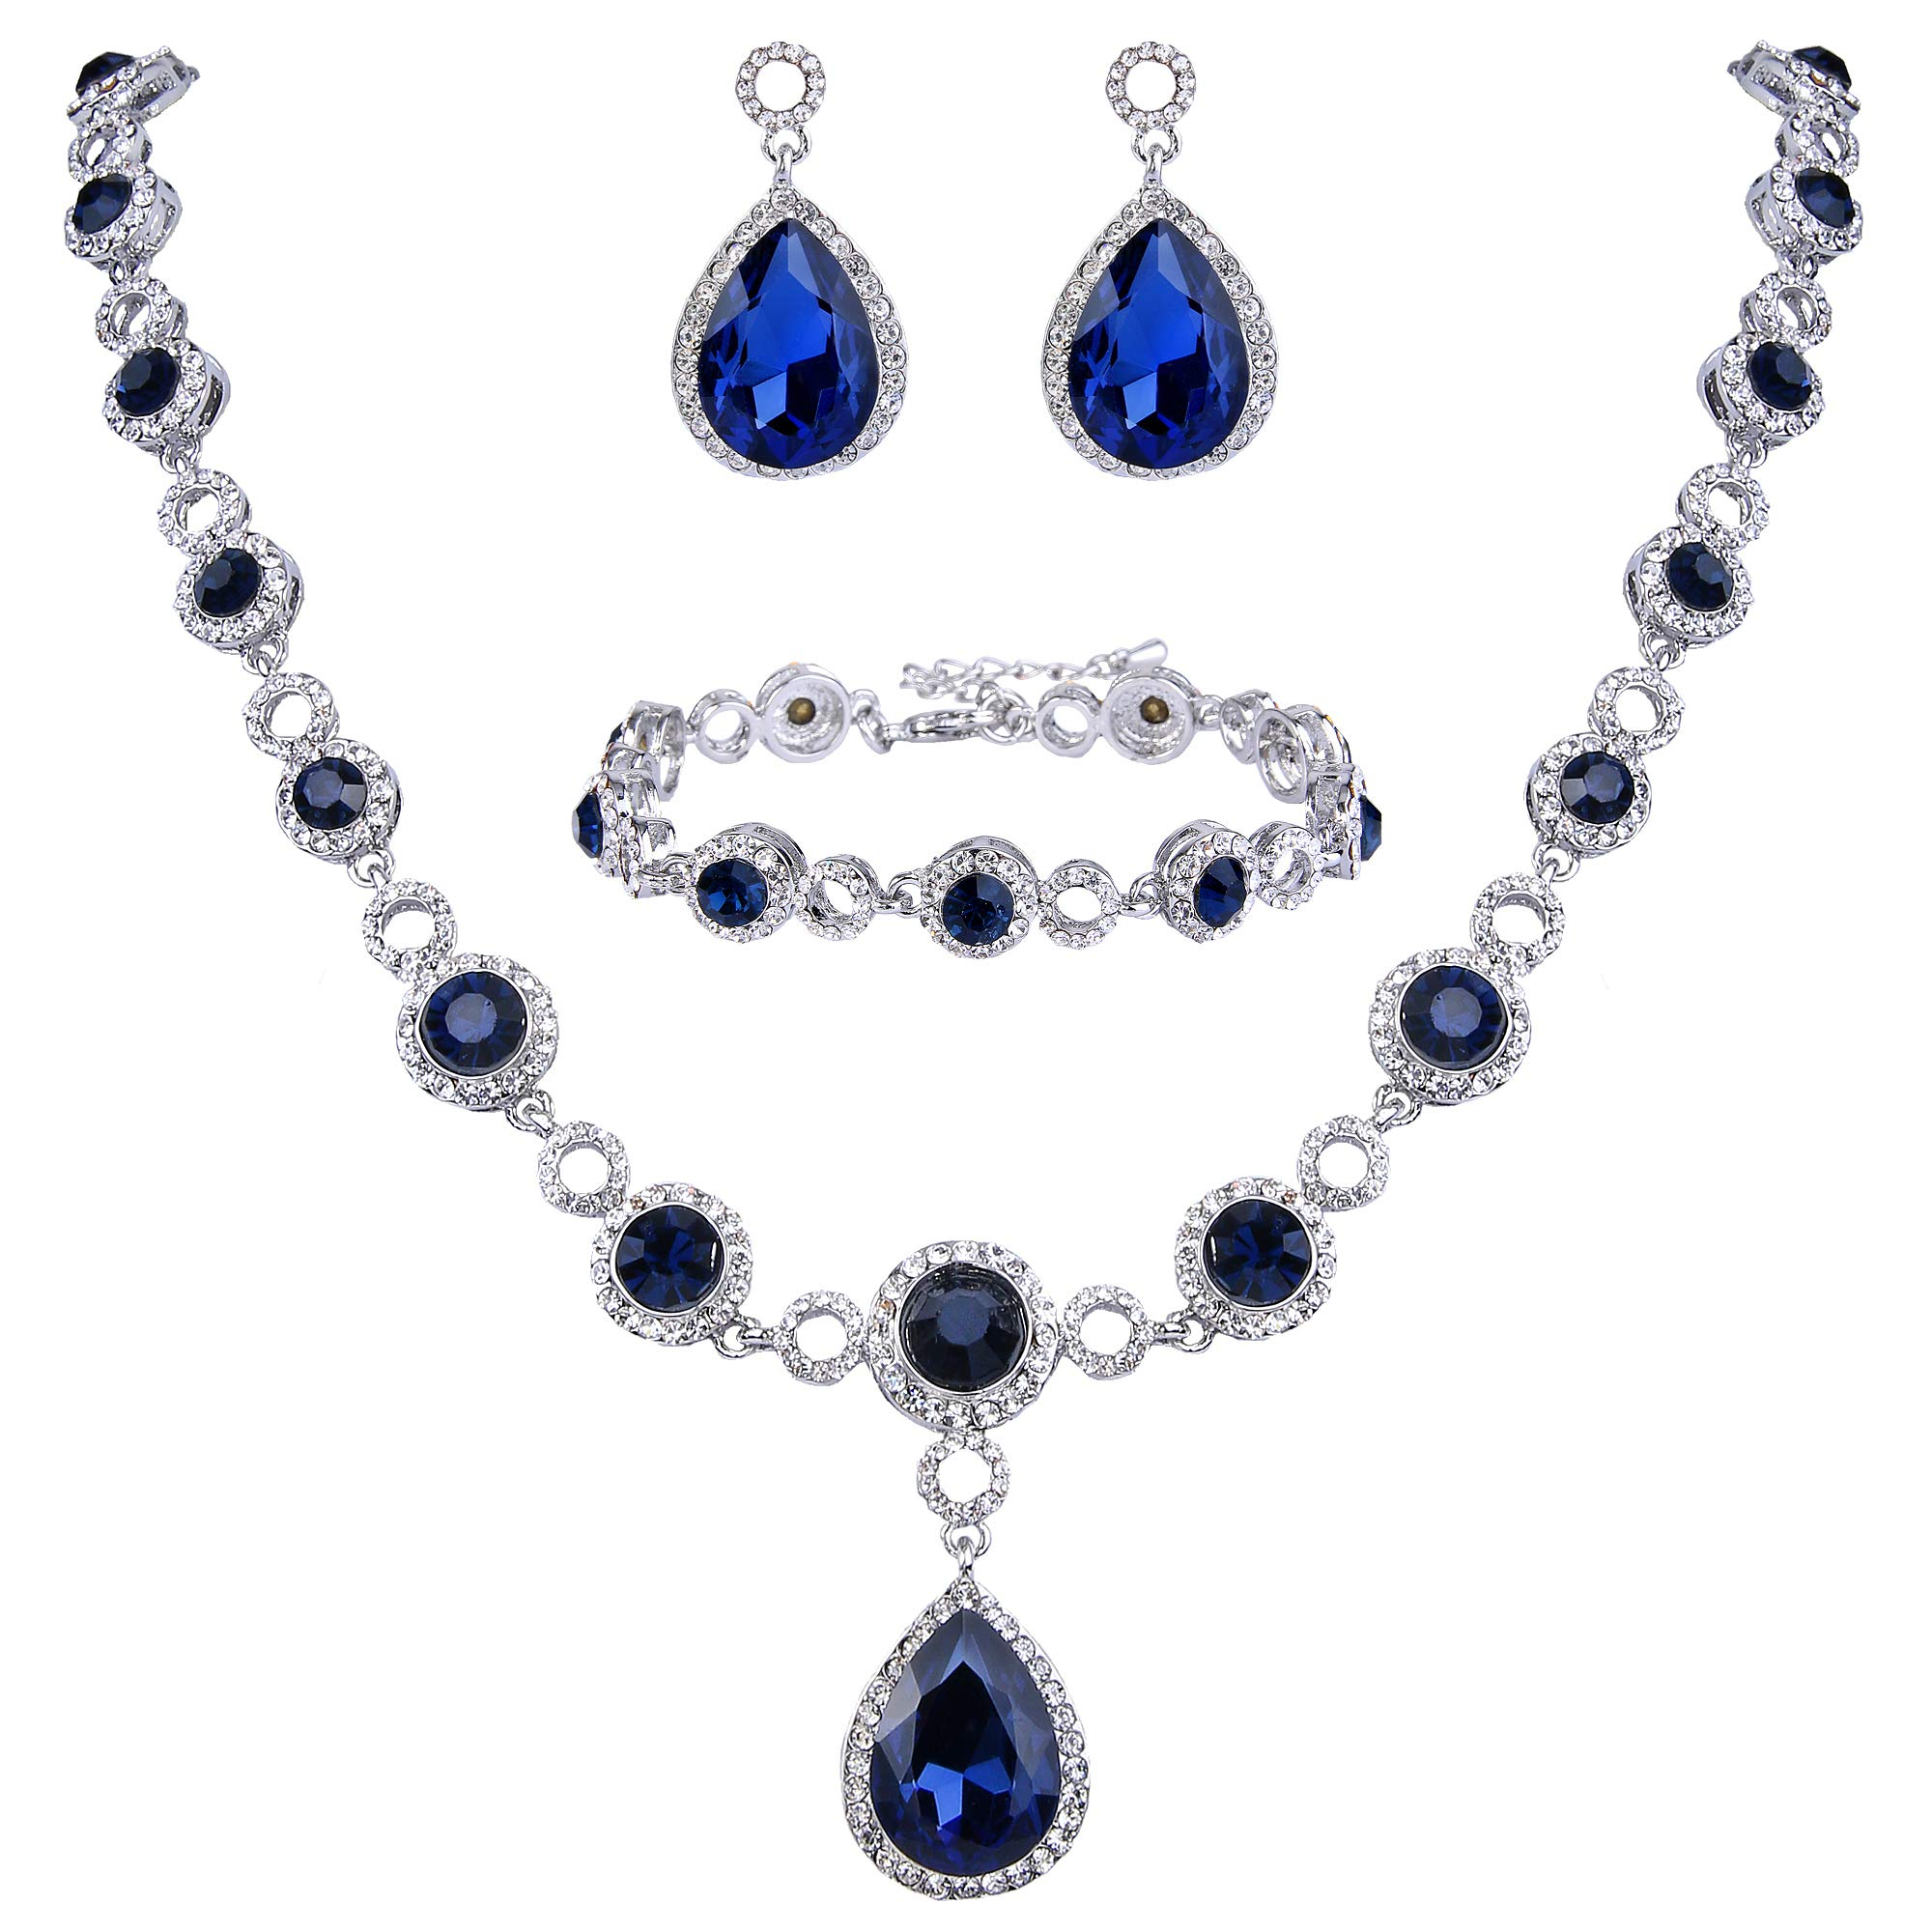 BriLove Wedding Bridal Necklace Bracelet Earrings Jewelry Set for Women Crystal Infinity Figure 8 Teardrop Y-Necklace Dangle Earrings Tennis Bracelet Set Navy Blue Sapphire Color Silver-Tone